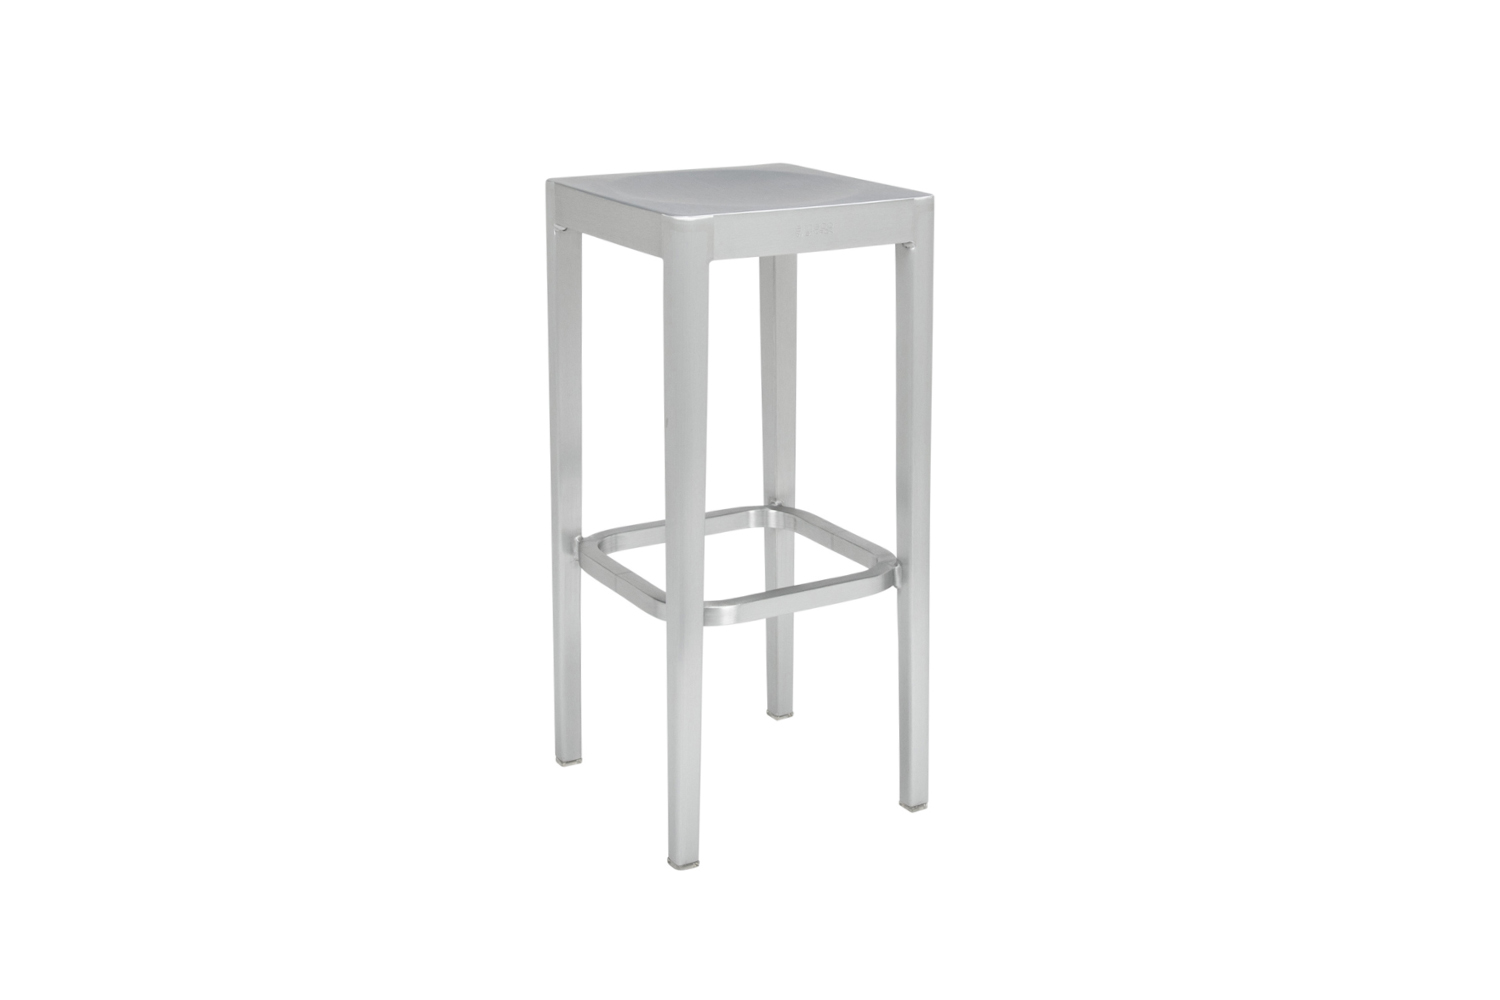 The Philippe Starck Emeco Stool is $445 at Hive.